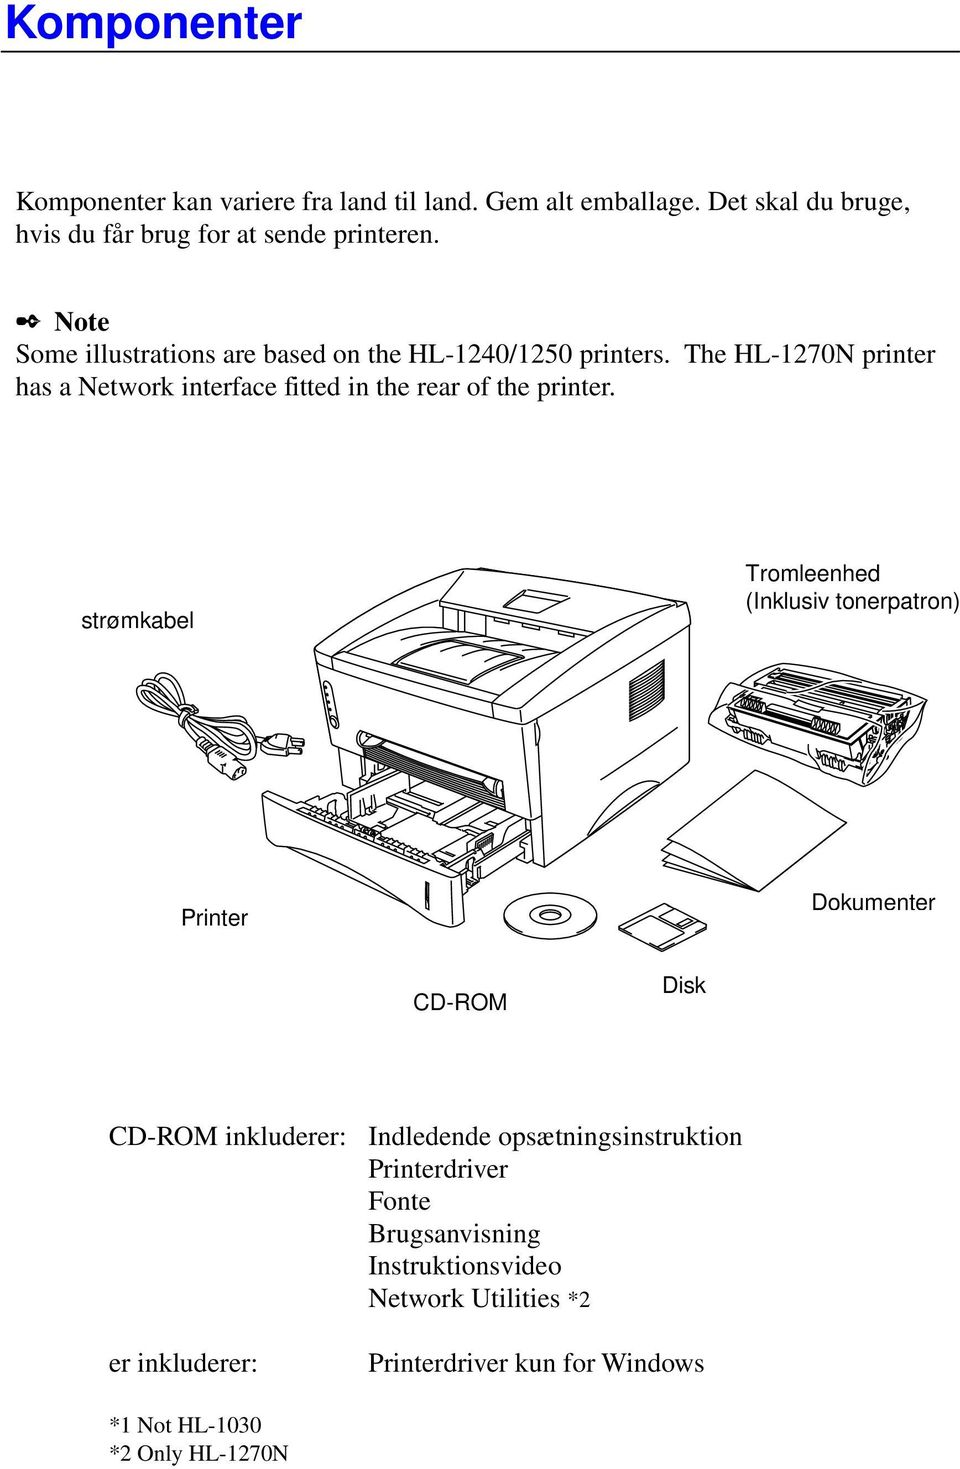 The HL-1270N printer has a Network interface fitted in the rear of the printer.